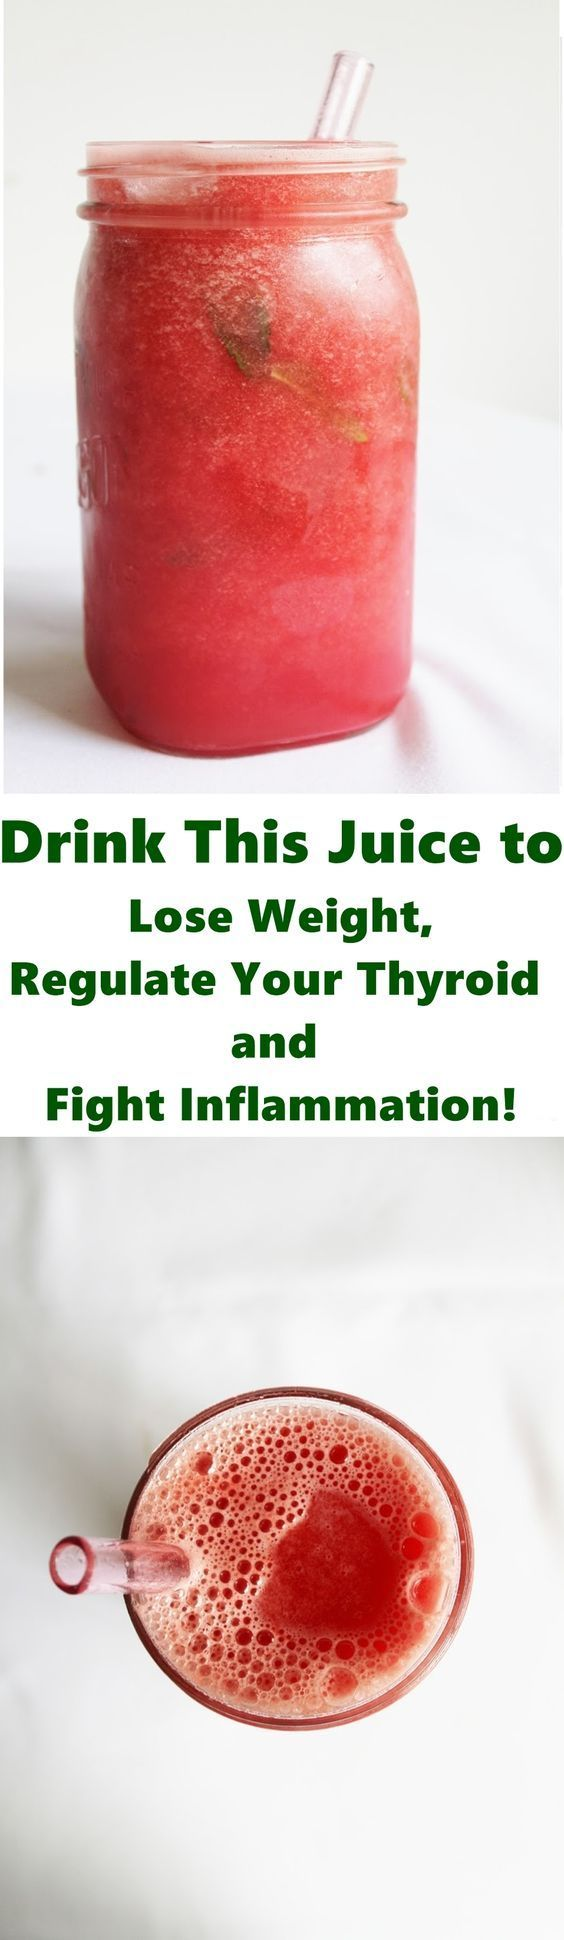 Drink This Juice to Lose Weight, Regulate Your Thyroid and Fight Inflammation! – Lifee Too